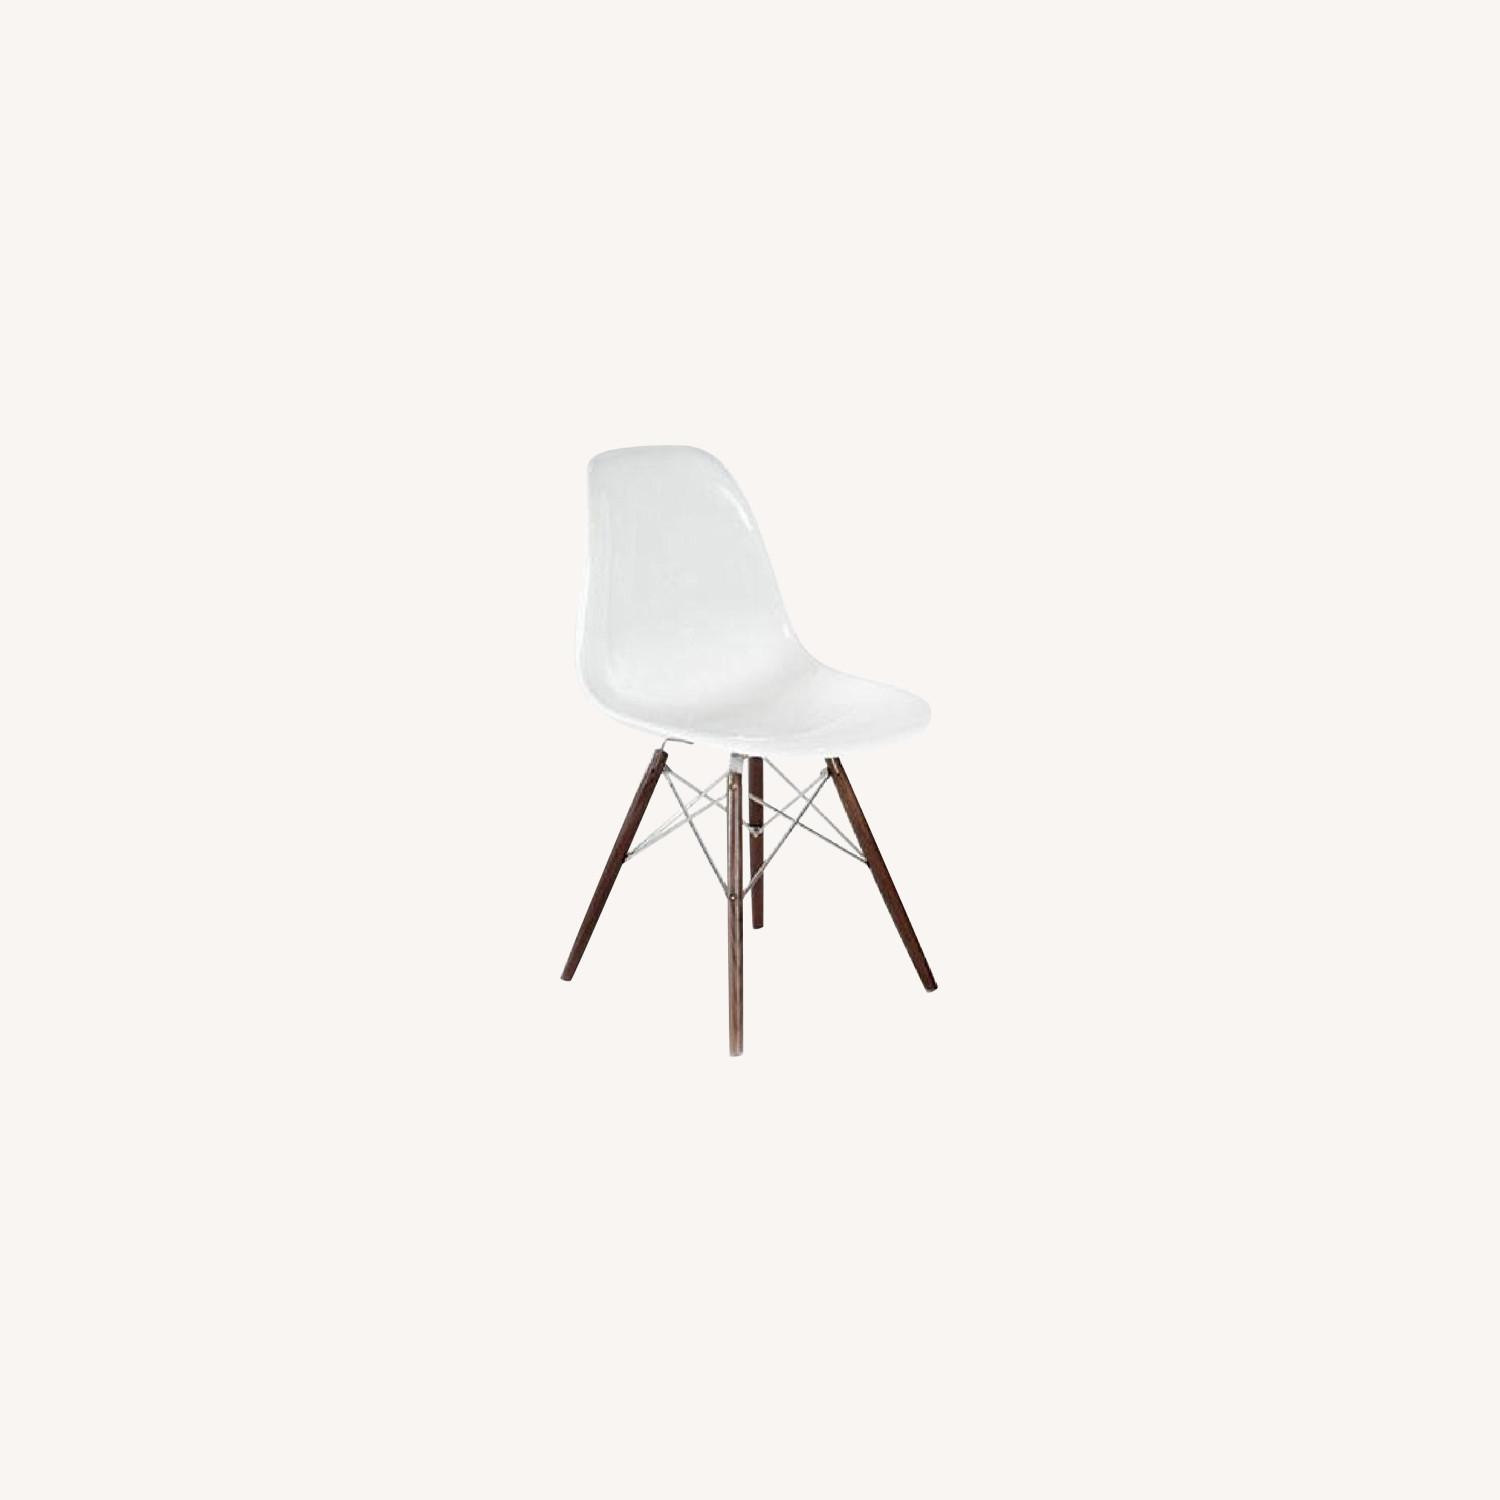 Organic Modernism Eames-Style Side Chairs - image-0